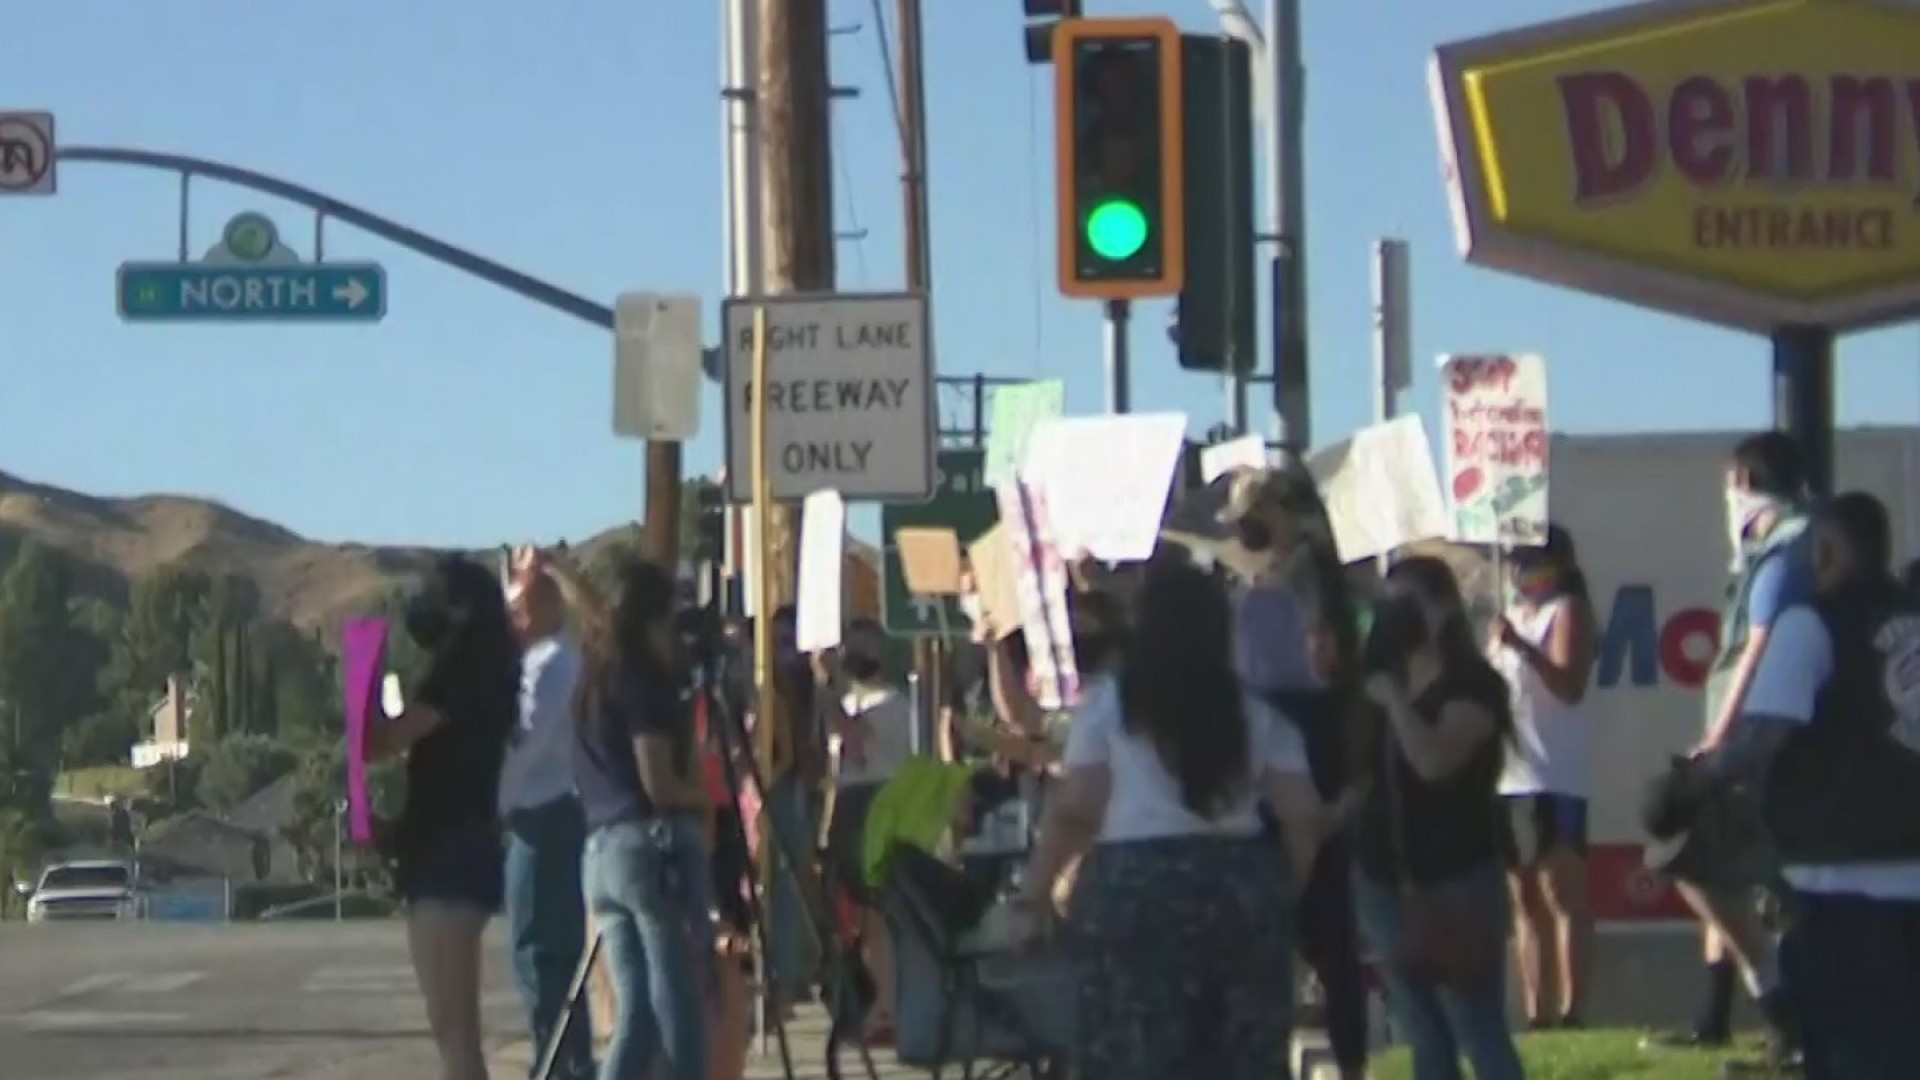 On July 18, 2020, protesters rally behind a pair of street vendors harassed by a local bar owner in a confrontation captured on camera days earlier in Canyon Country. (KTLA)